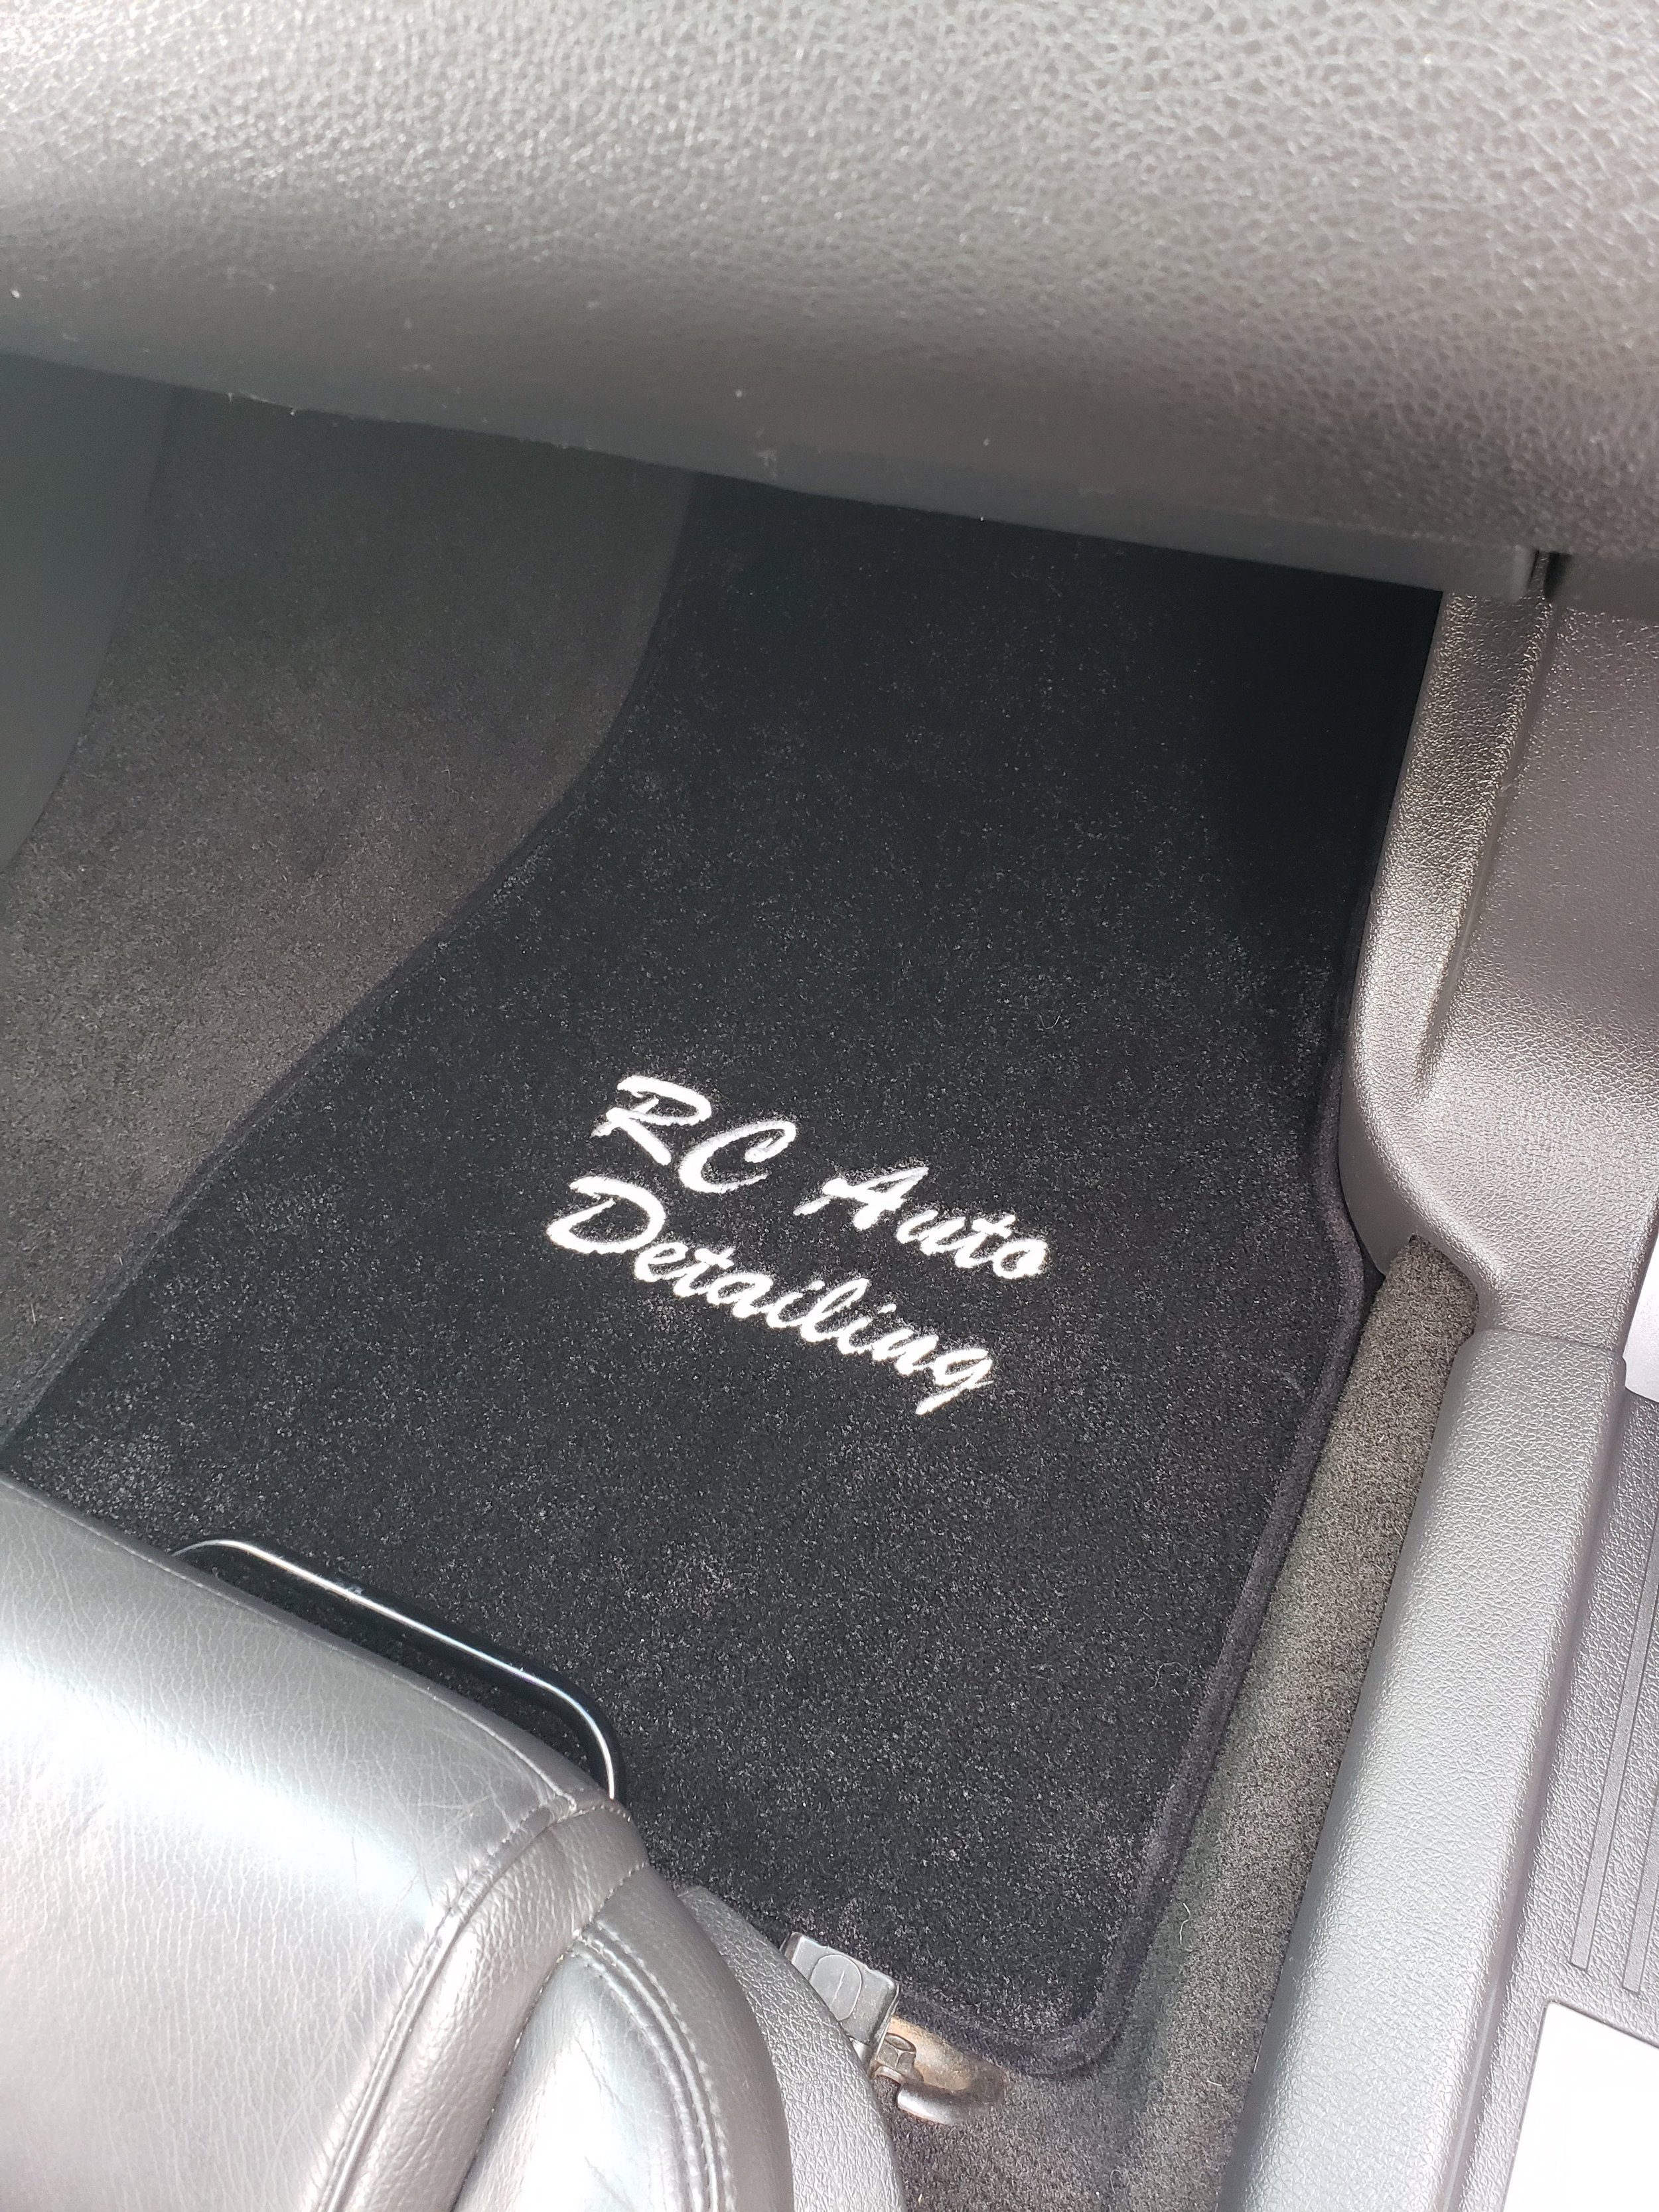 Customizable car products available for your vehicle at RC Detailing and custom accesories!